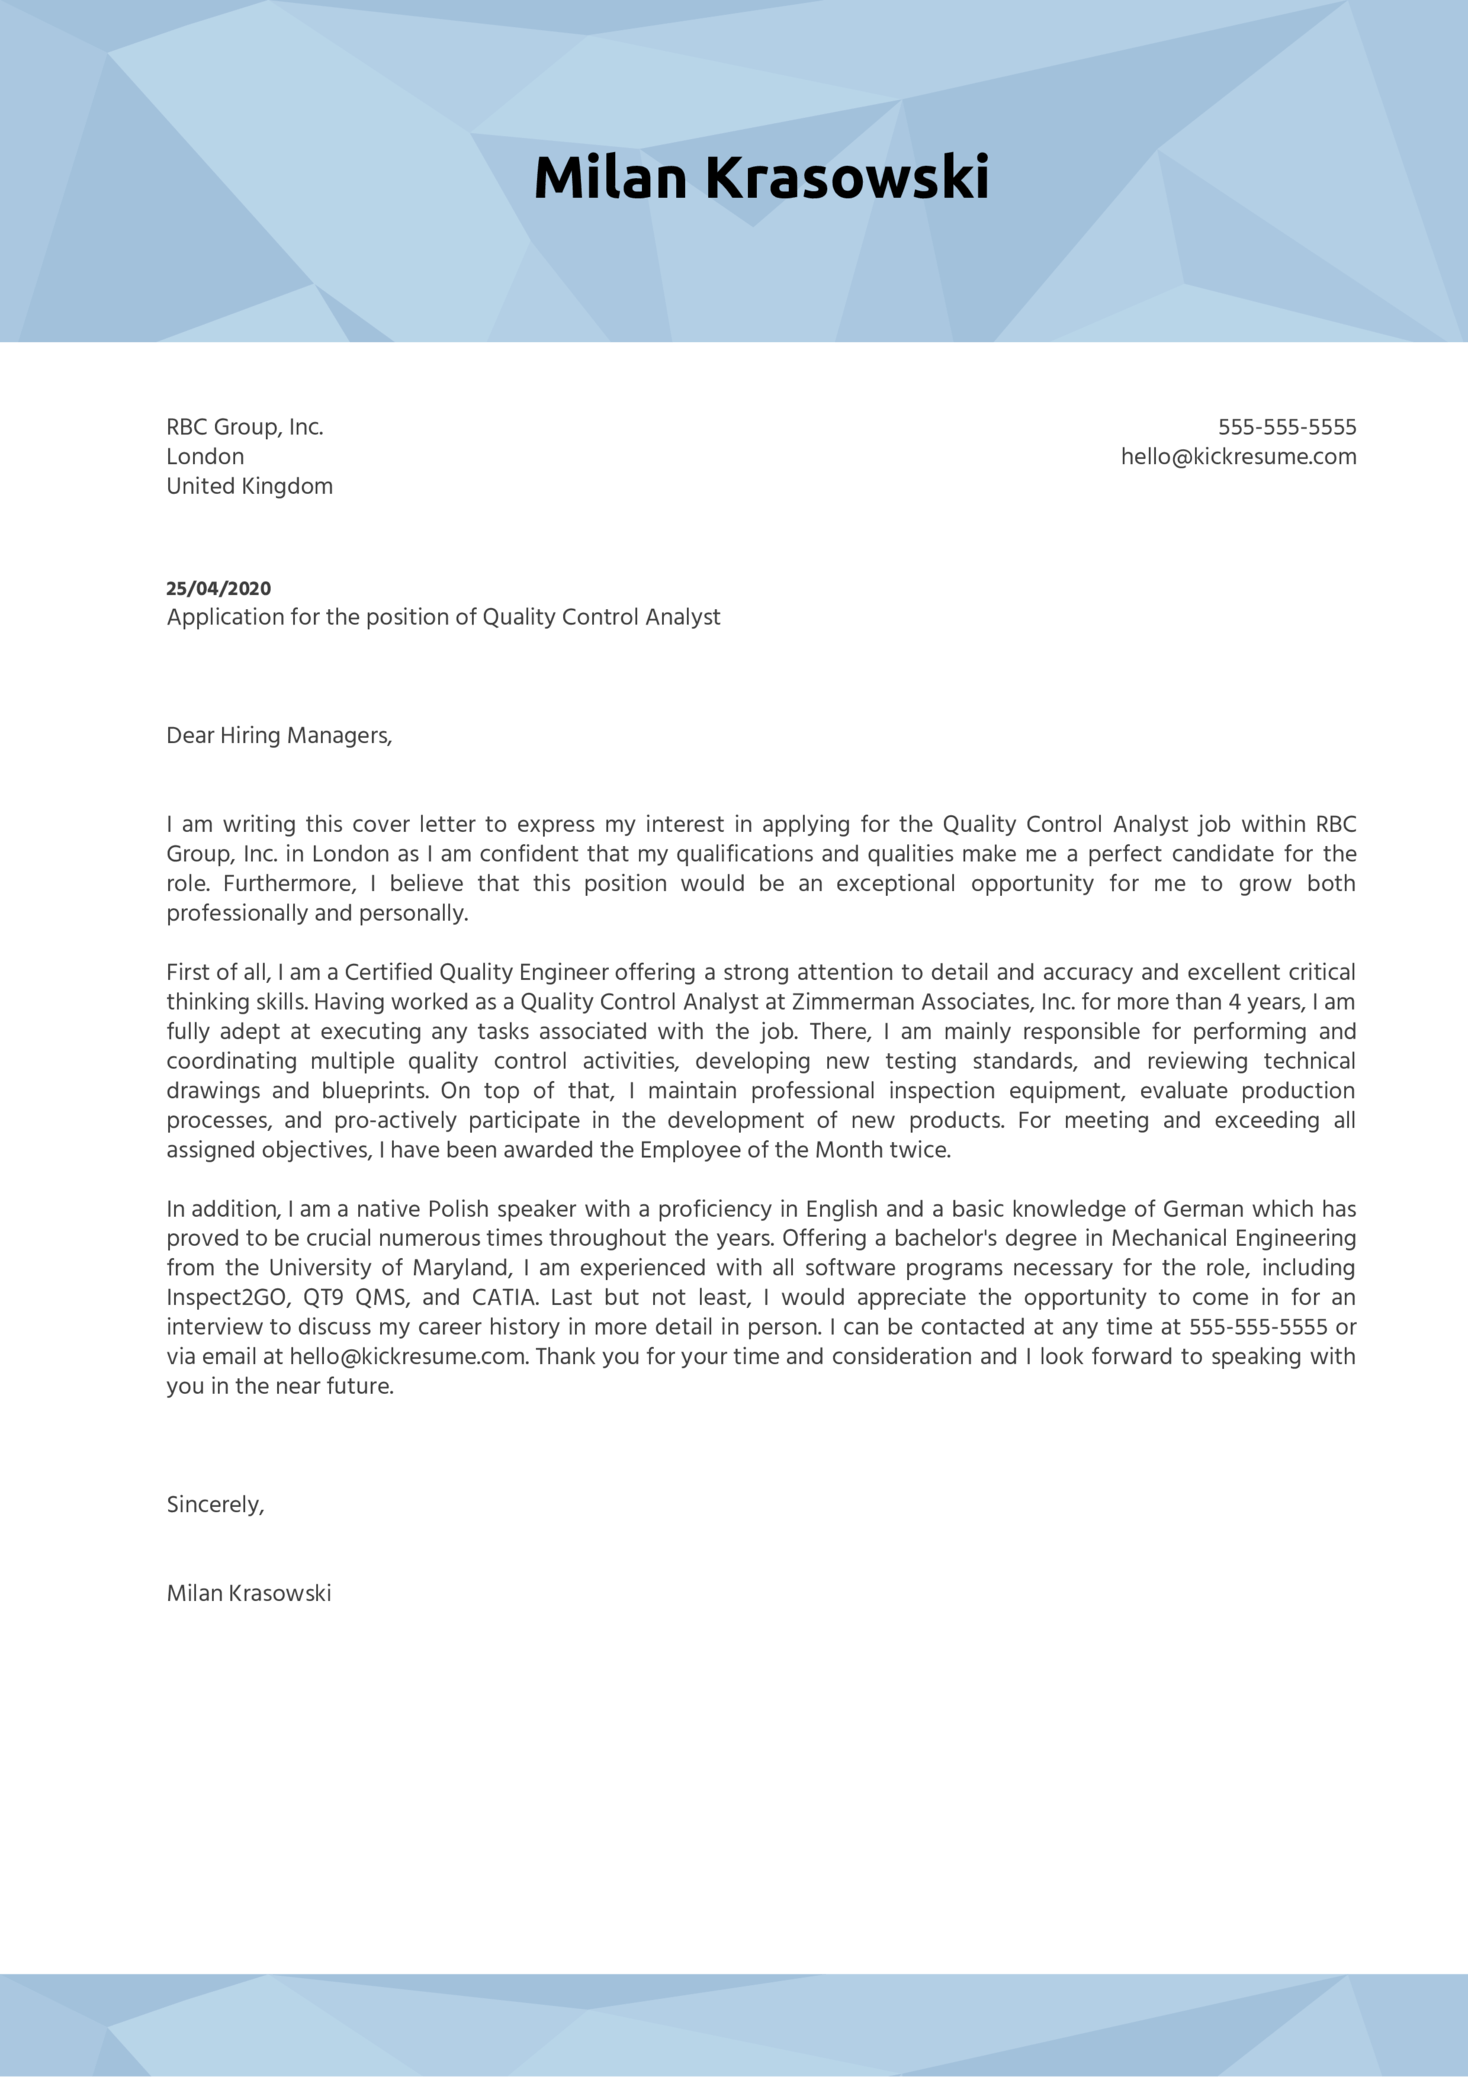 Quality Control Analyst Cover Letter Example